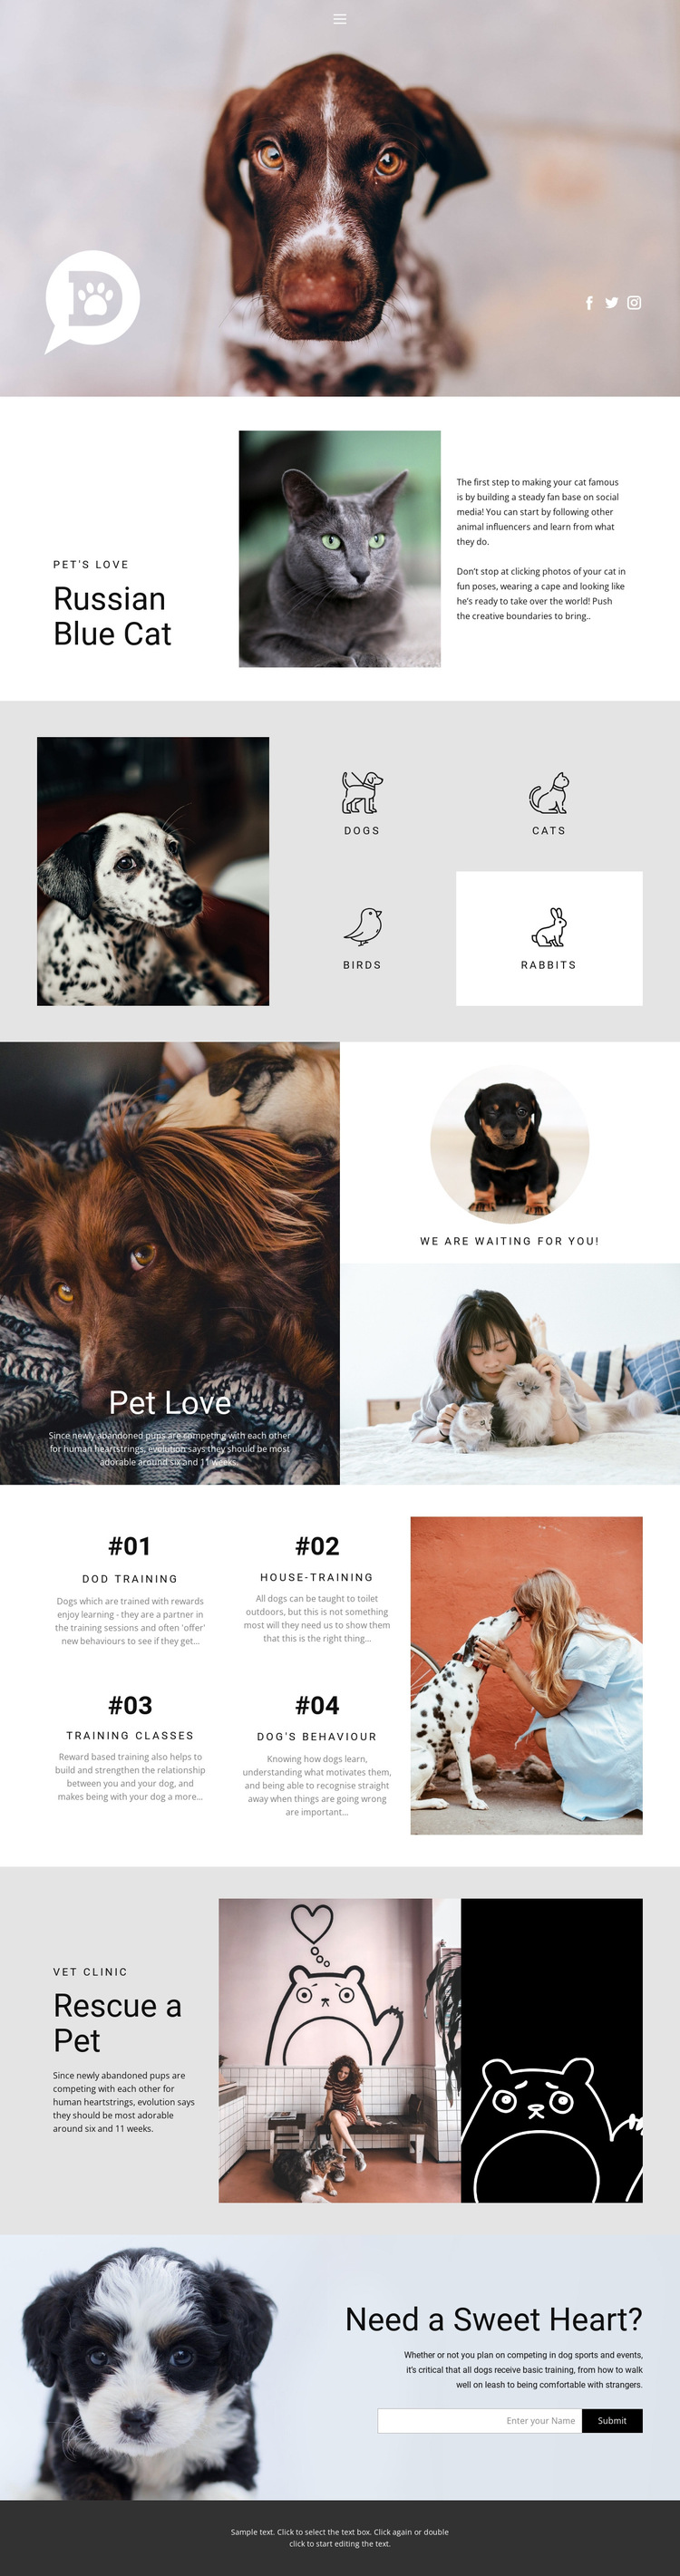 Care for pets and animals HTML5 Template